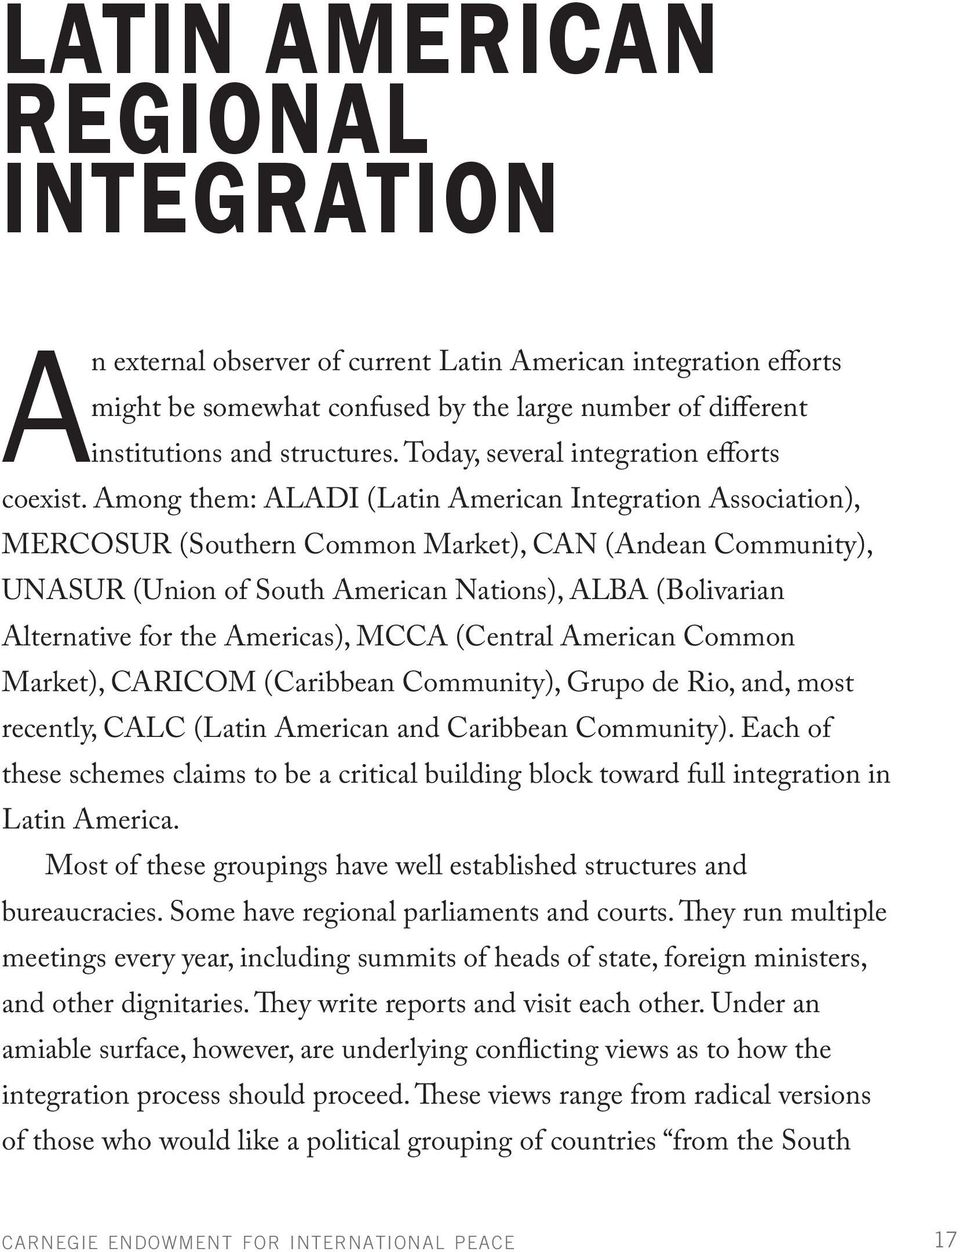 Among them: ALADI (Latin American Integration Association), MERCOSUR (Southern Common Market), CAN (Andean Community), UNASUR (Union of South American Nations), ALBA (Bolivarian Alternative for the